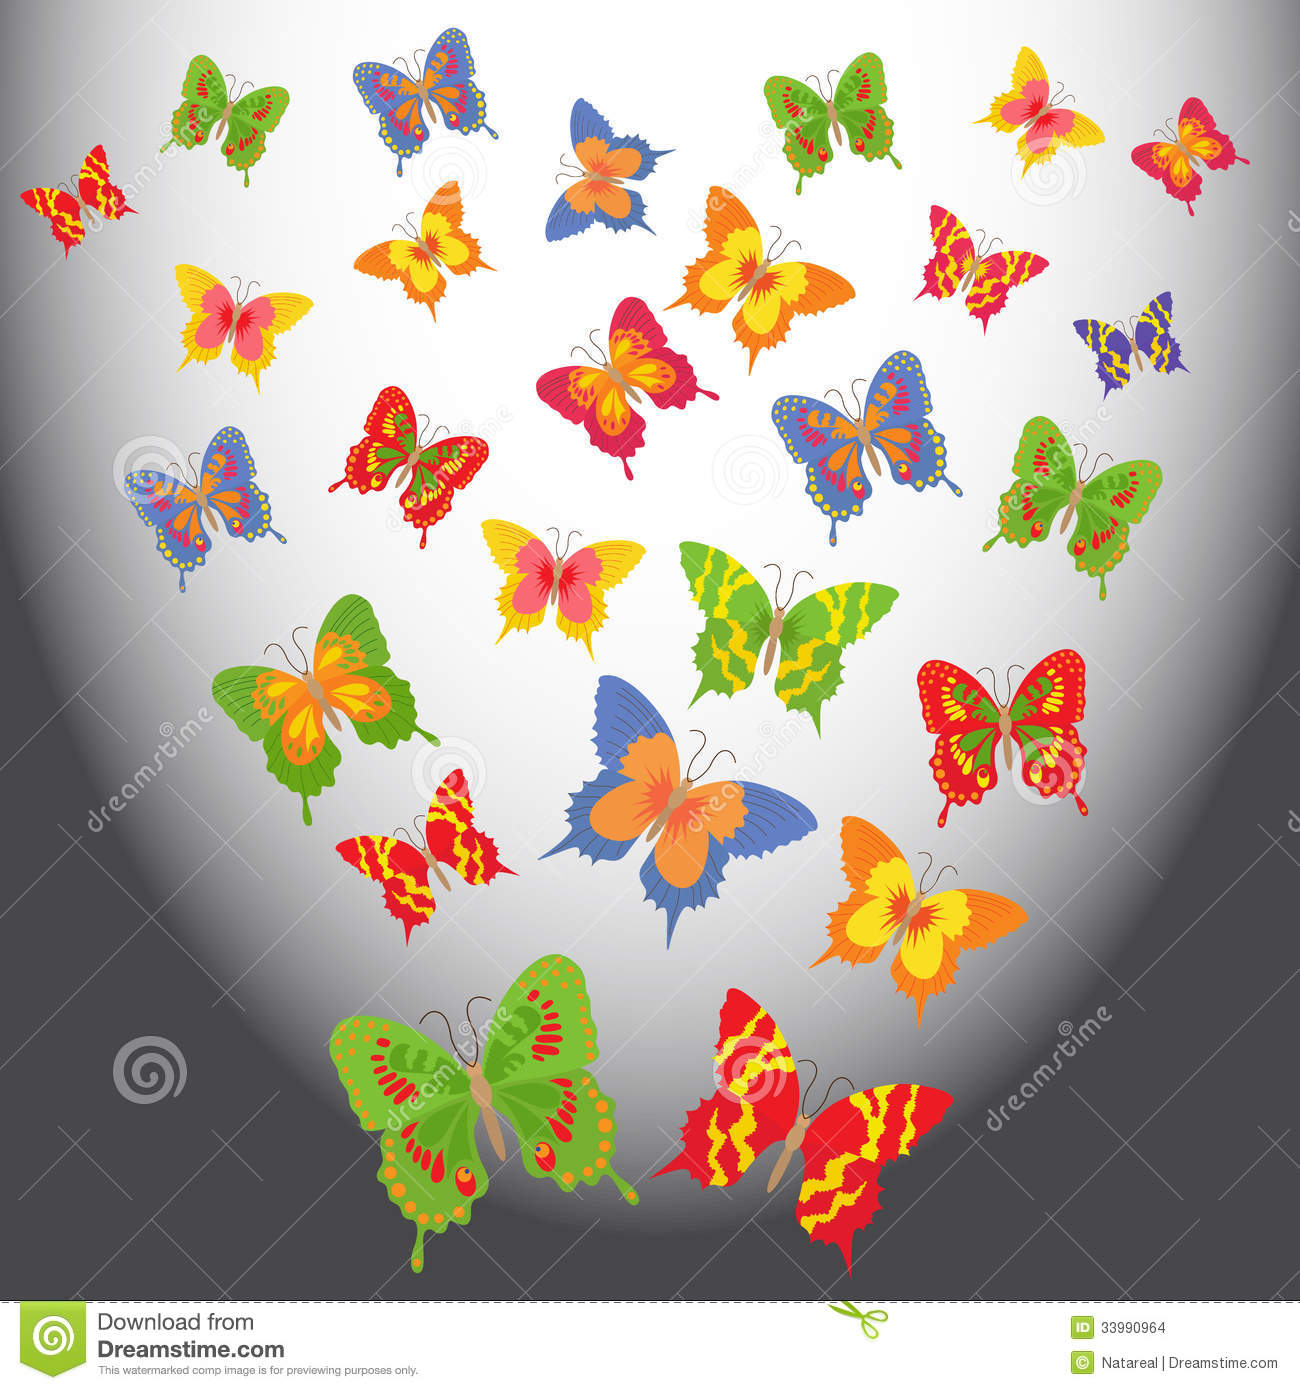 Flying Butterfly Animated Cartoon Butterflies In A Light Space Stock Vector Image